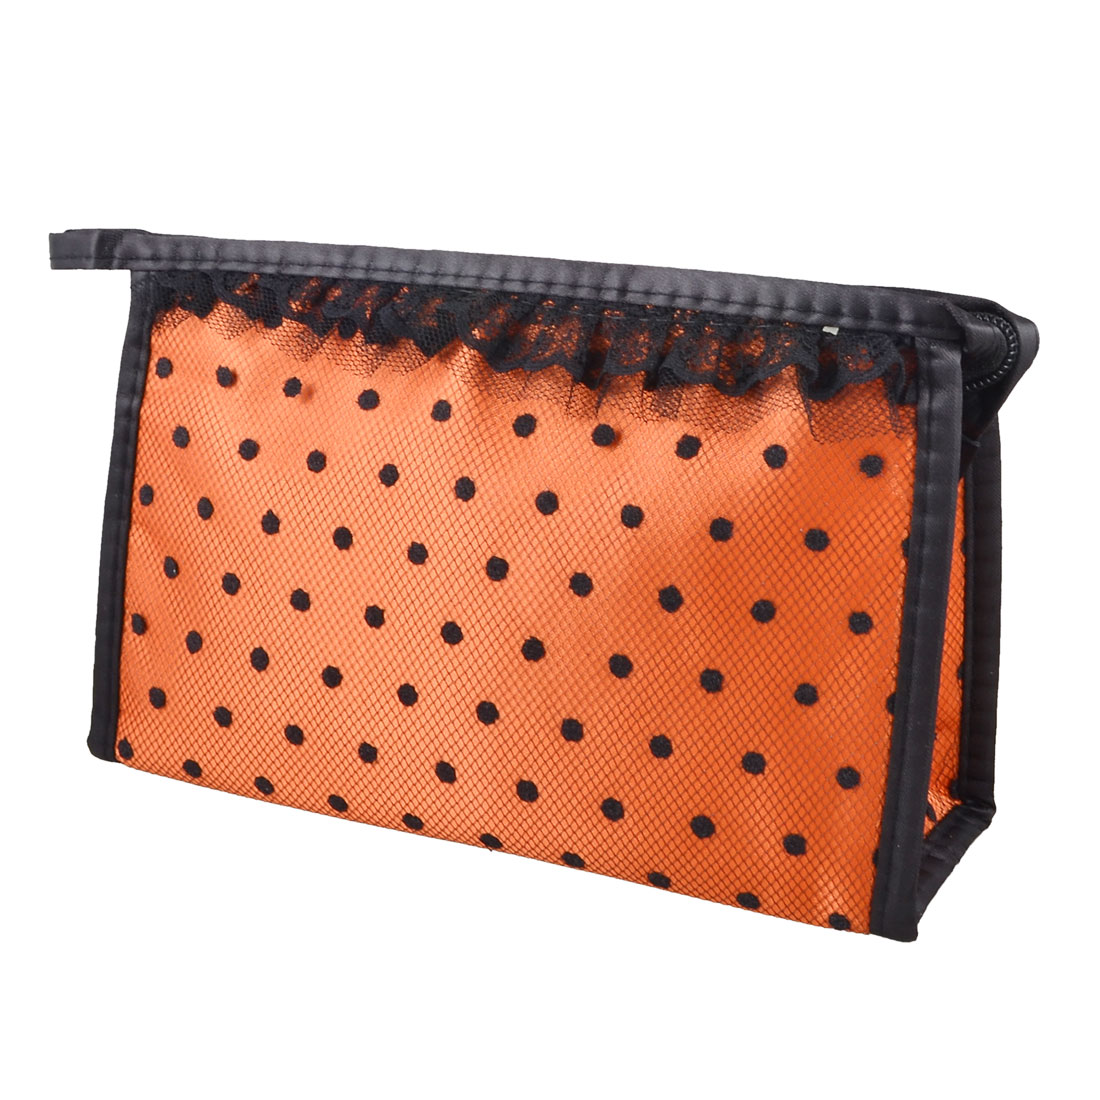 Dark Orange Black Dotted Mesh Lace Mirror Makeup Cosmetic Bag Organizer Mascaras Holder